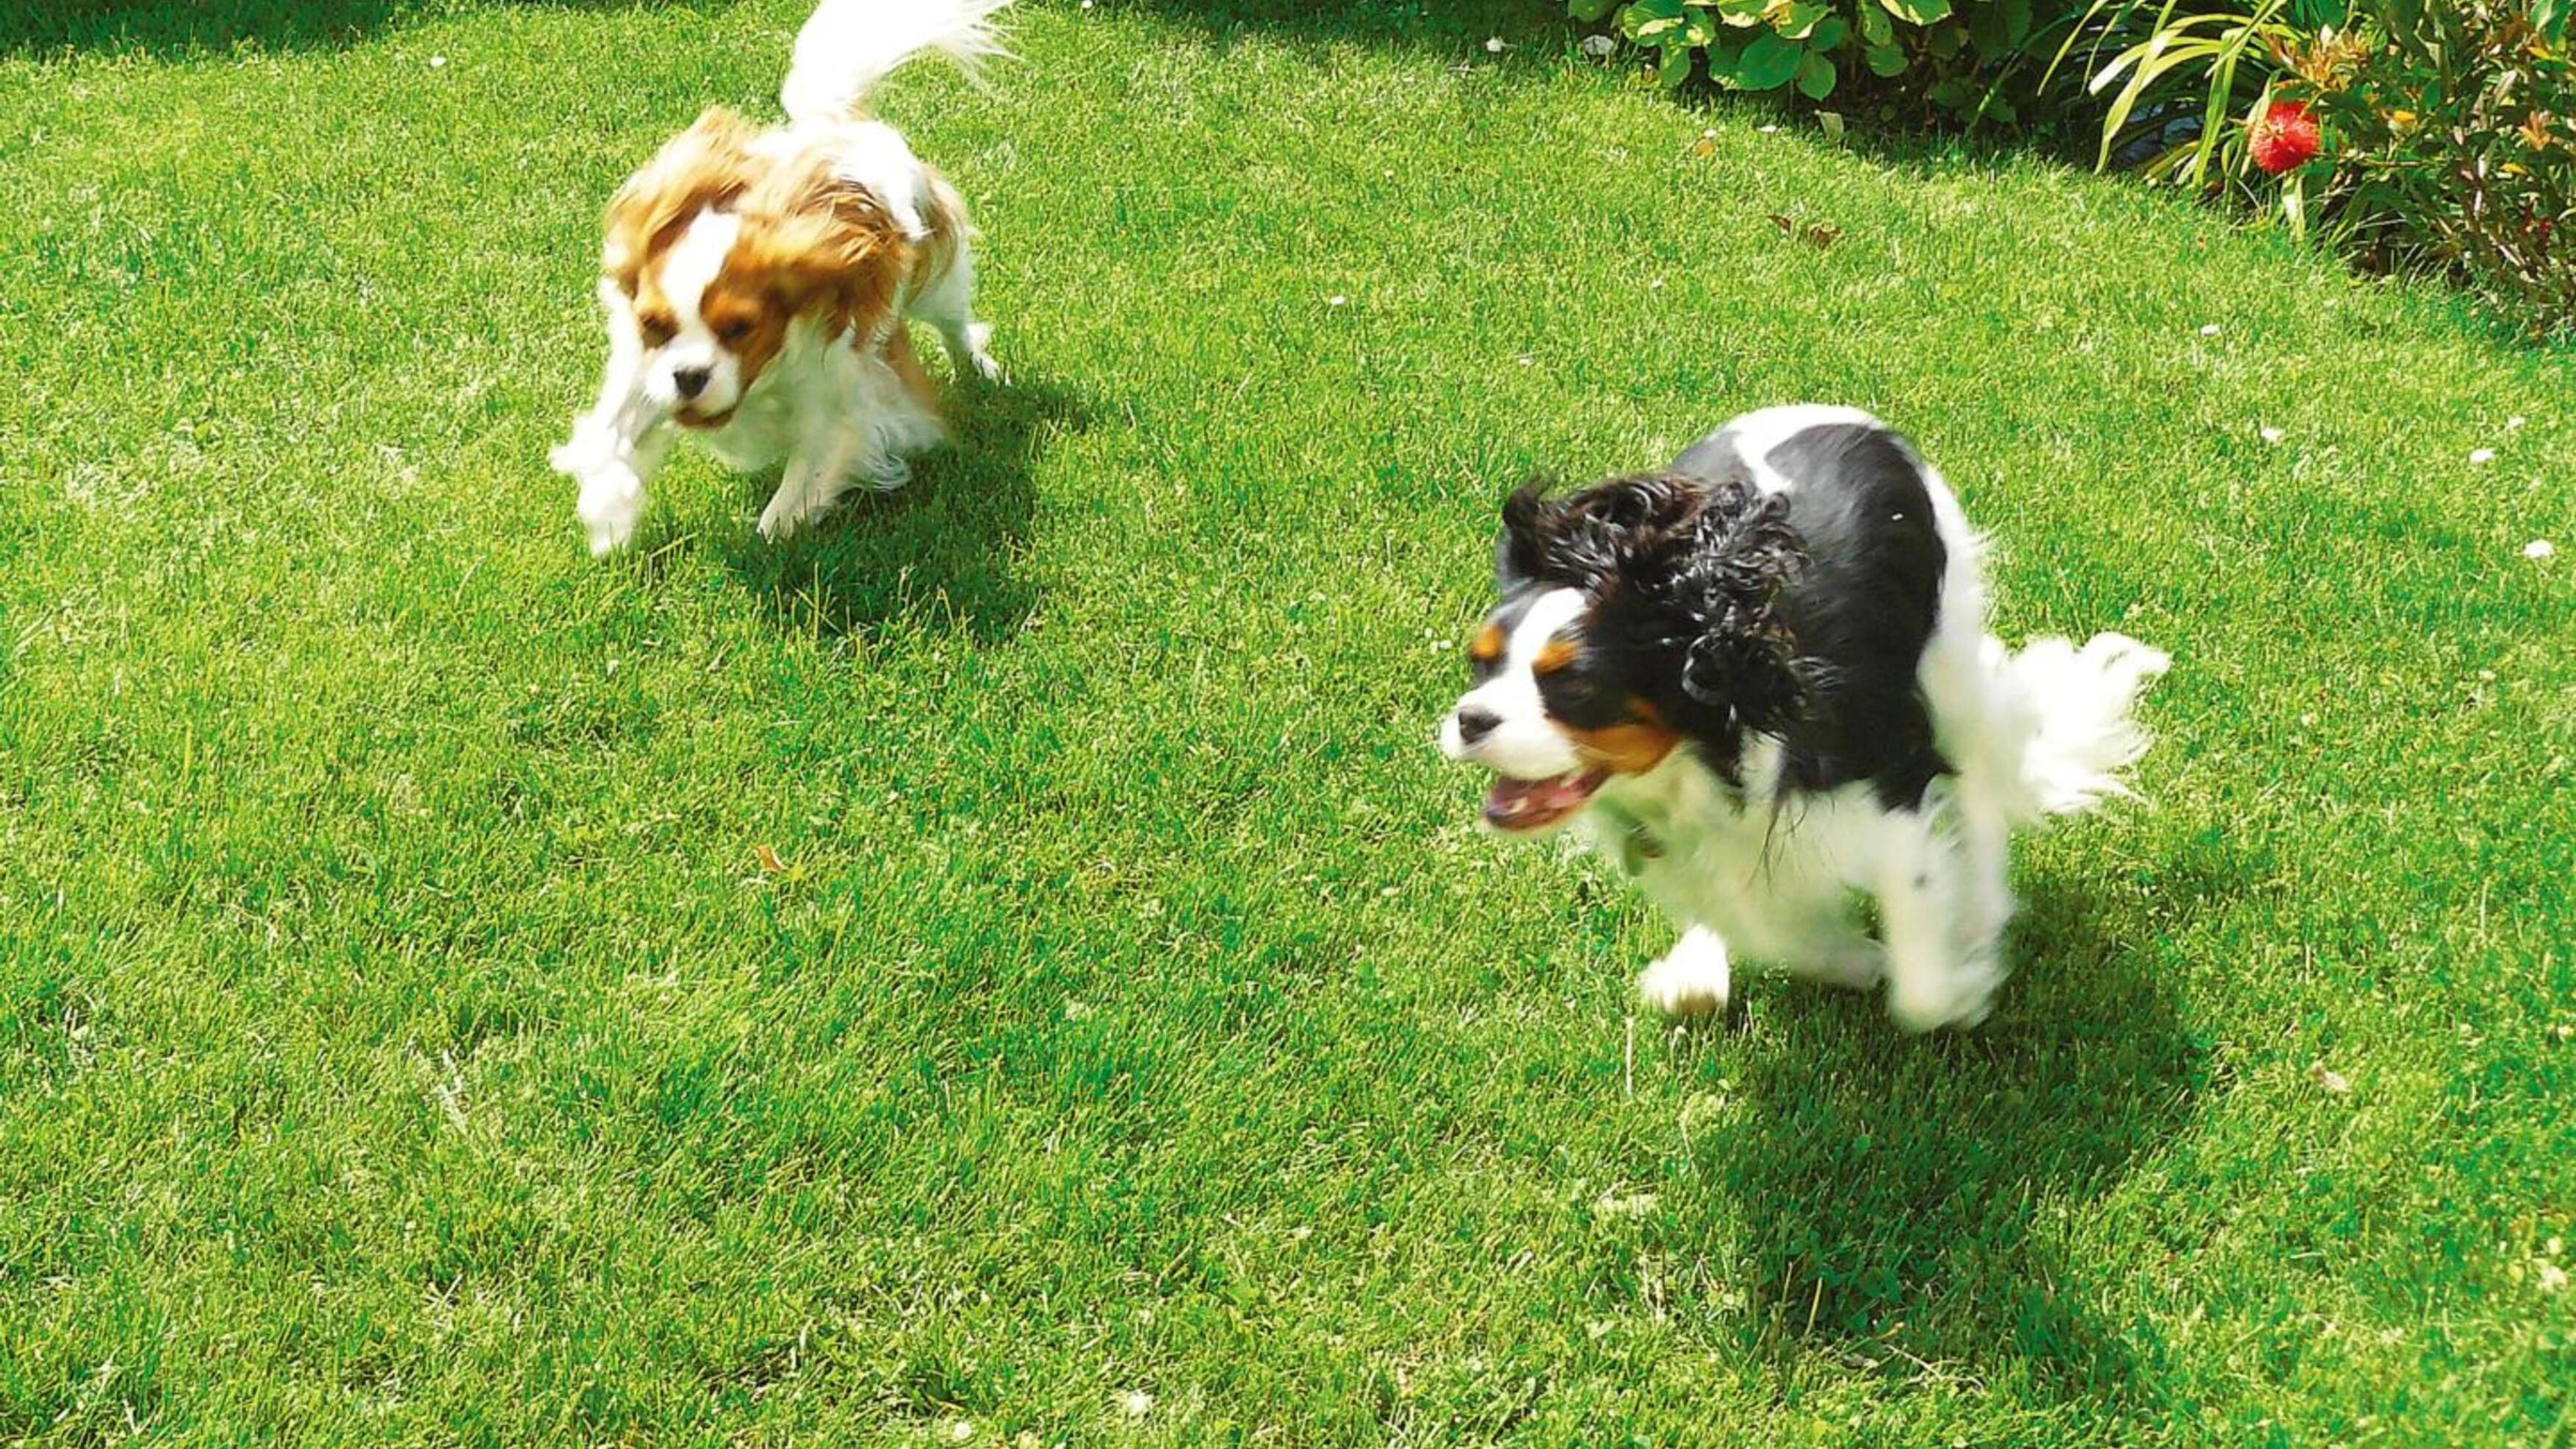 Two dogs running on the lawn.